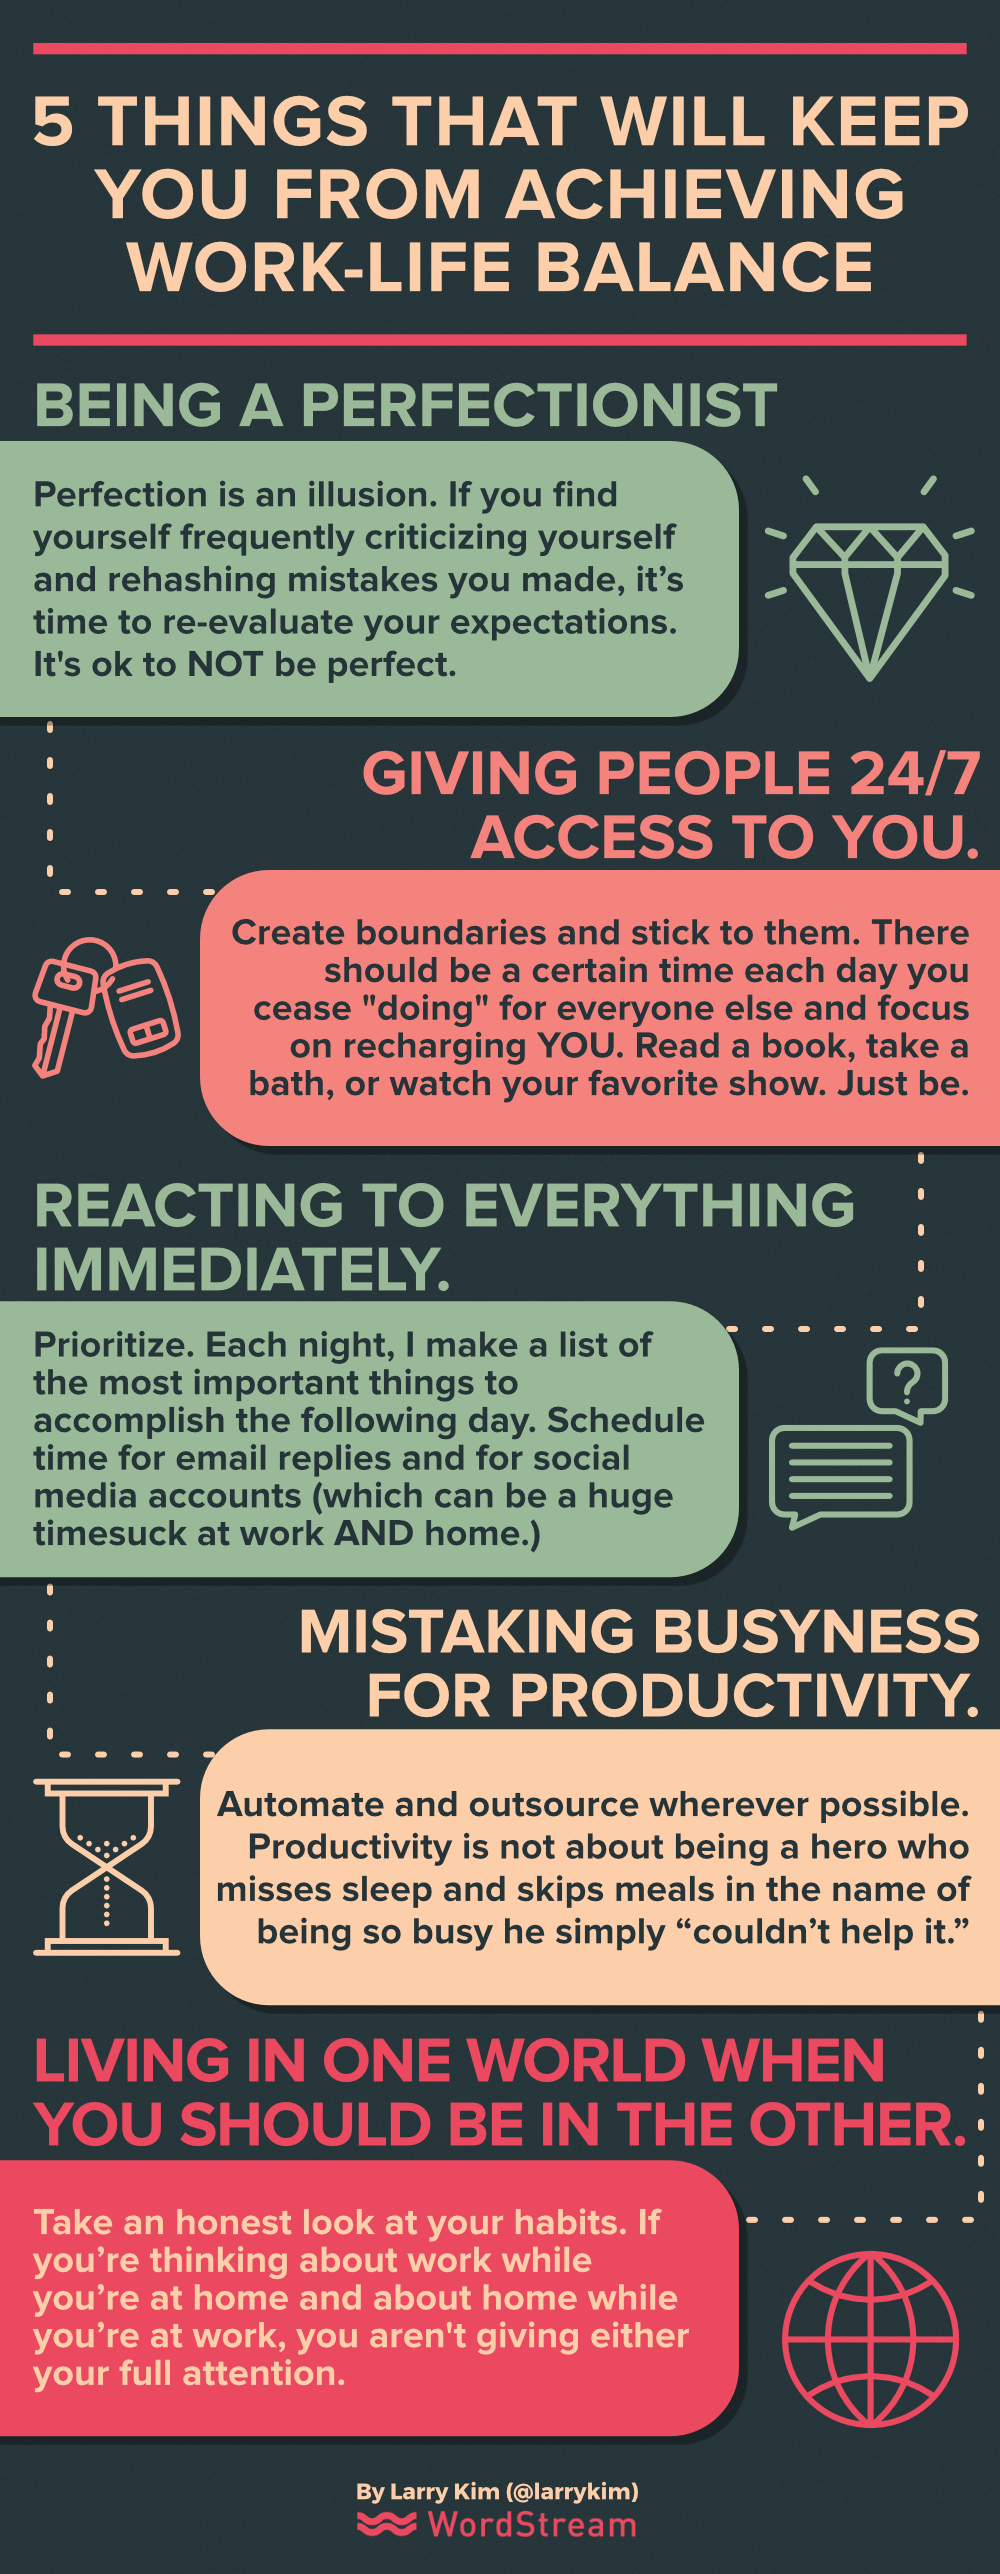 5 Things That Will Keep You from Achieving Work-Life Balance